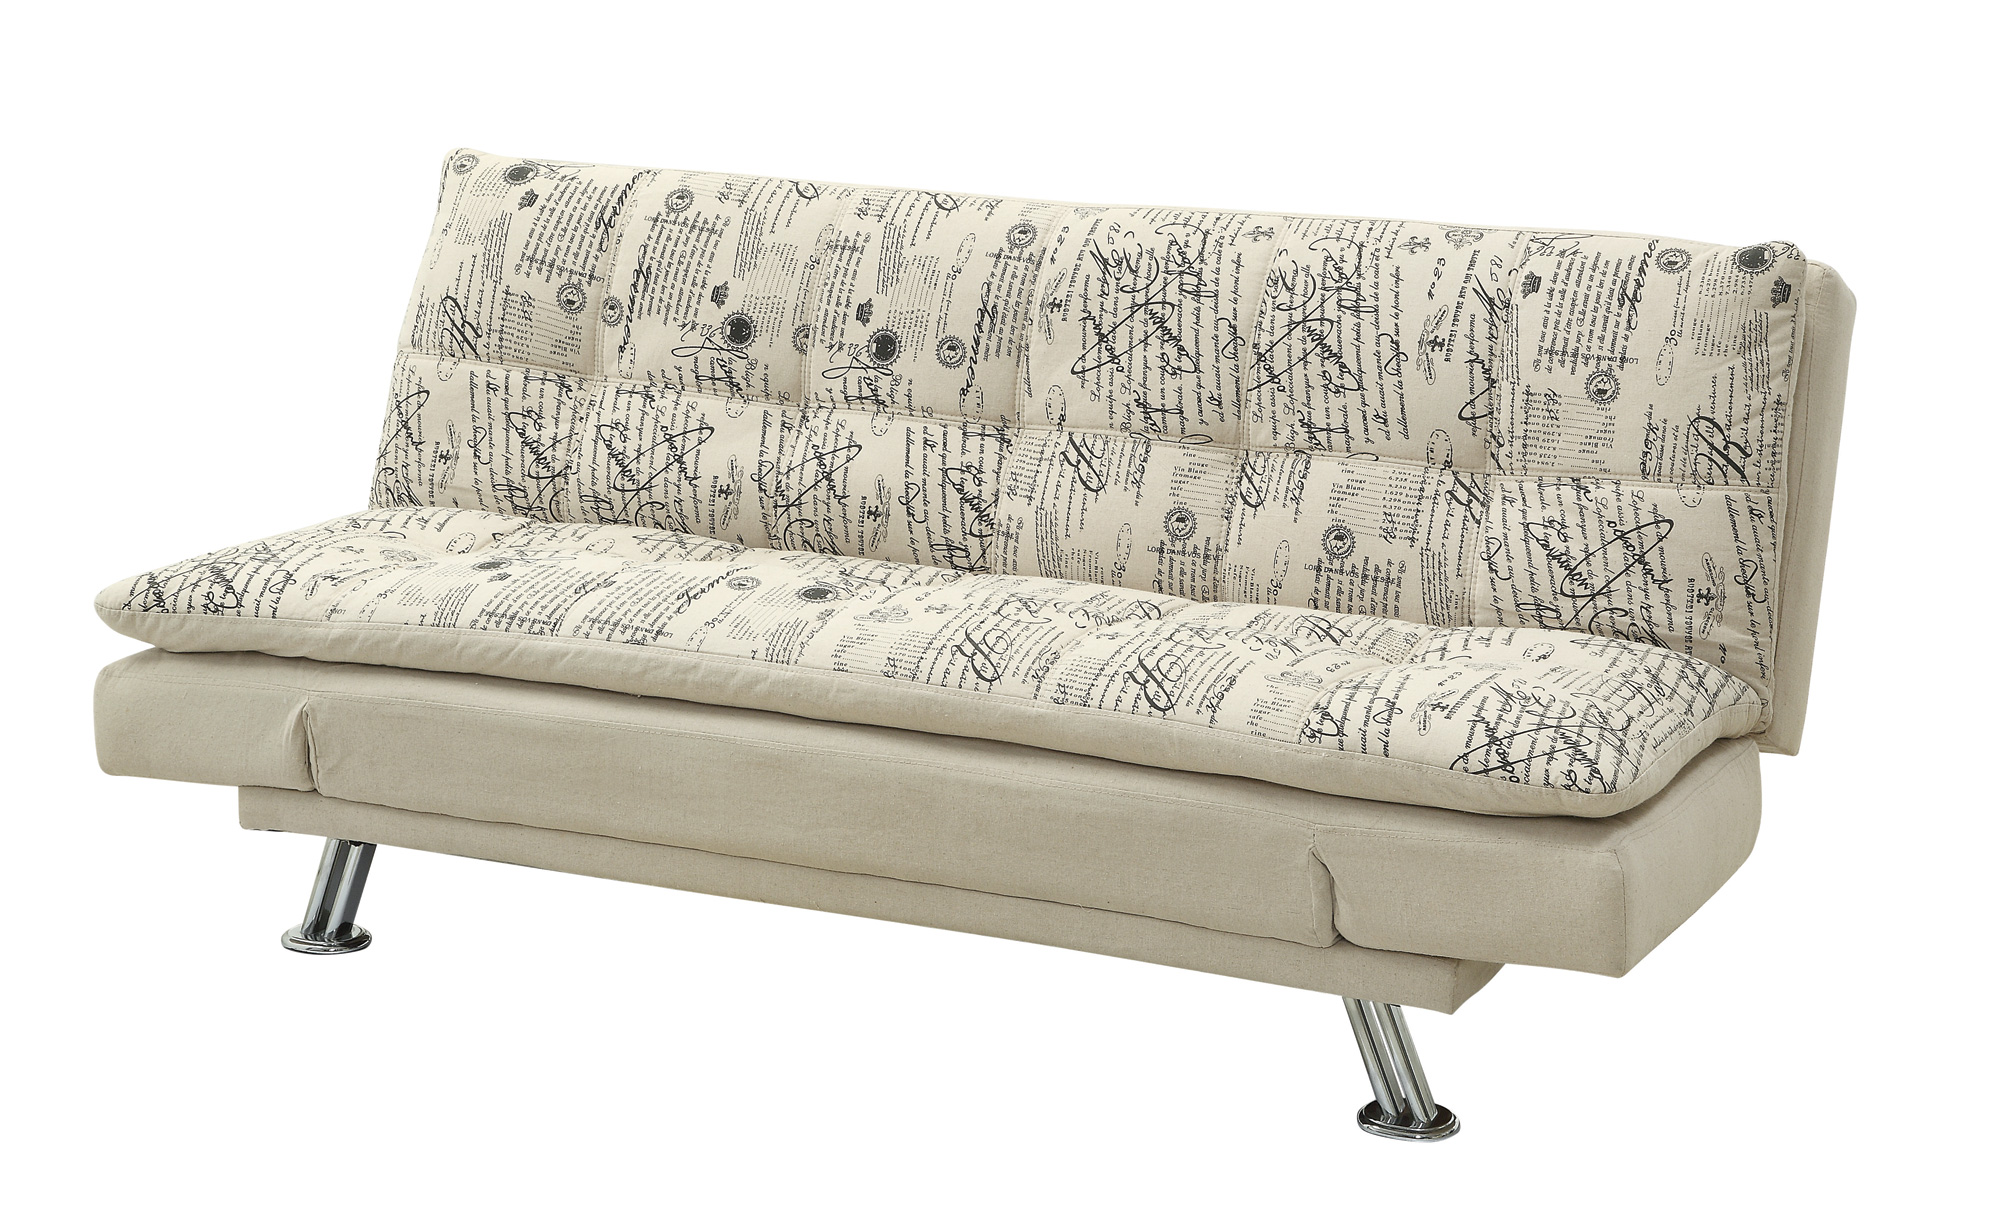 Groovy Kay Transitional Oatmeal Fabric Sofa Bed The Classy Home Ibusinesslaw Wood Chair Design Ideas Ibusinesslaworg